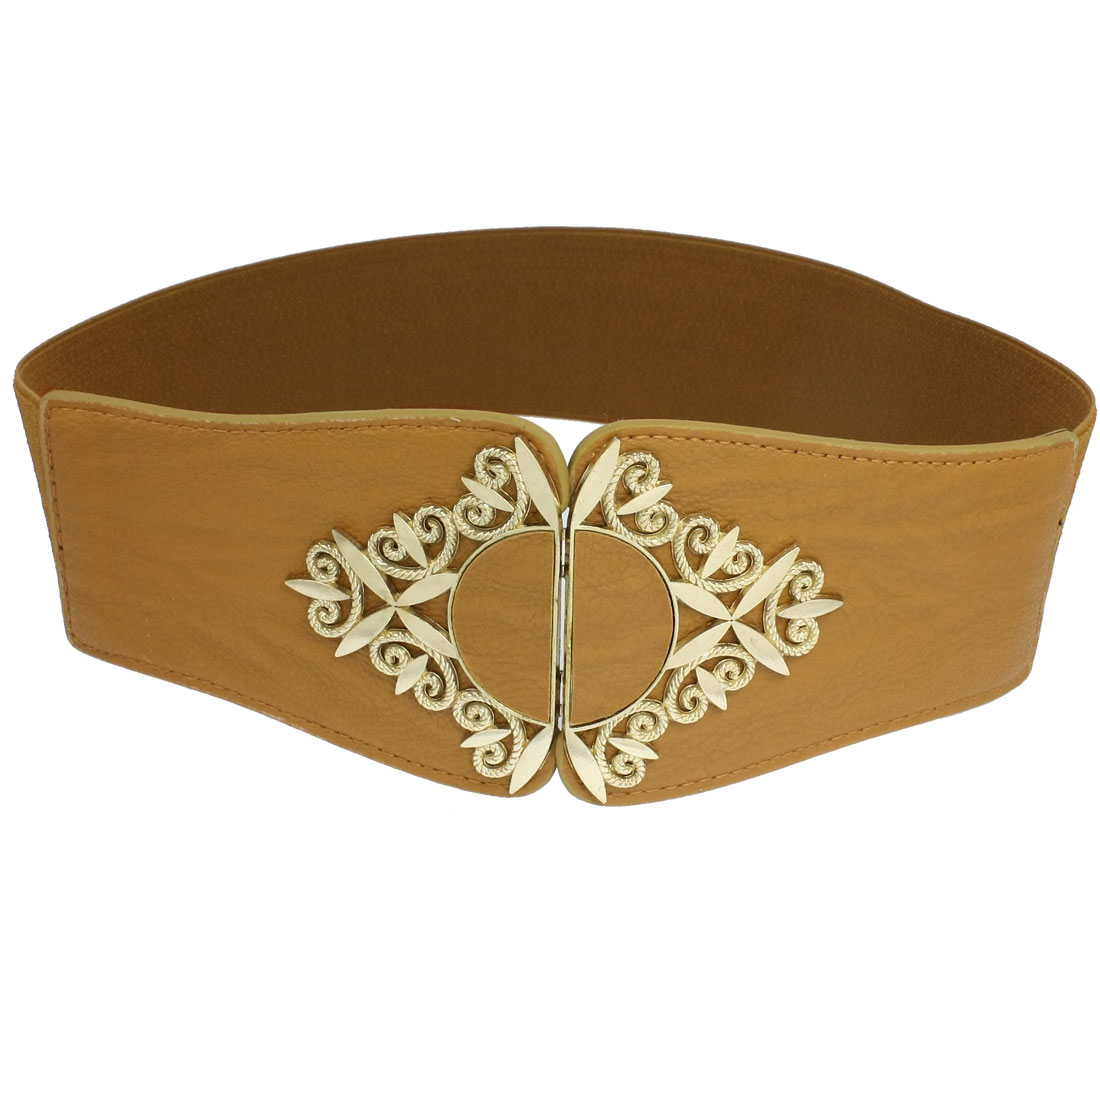 Gold Tone Leaf Interlocking Buckle Brown Faux Leather Stretchy Belt for Women